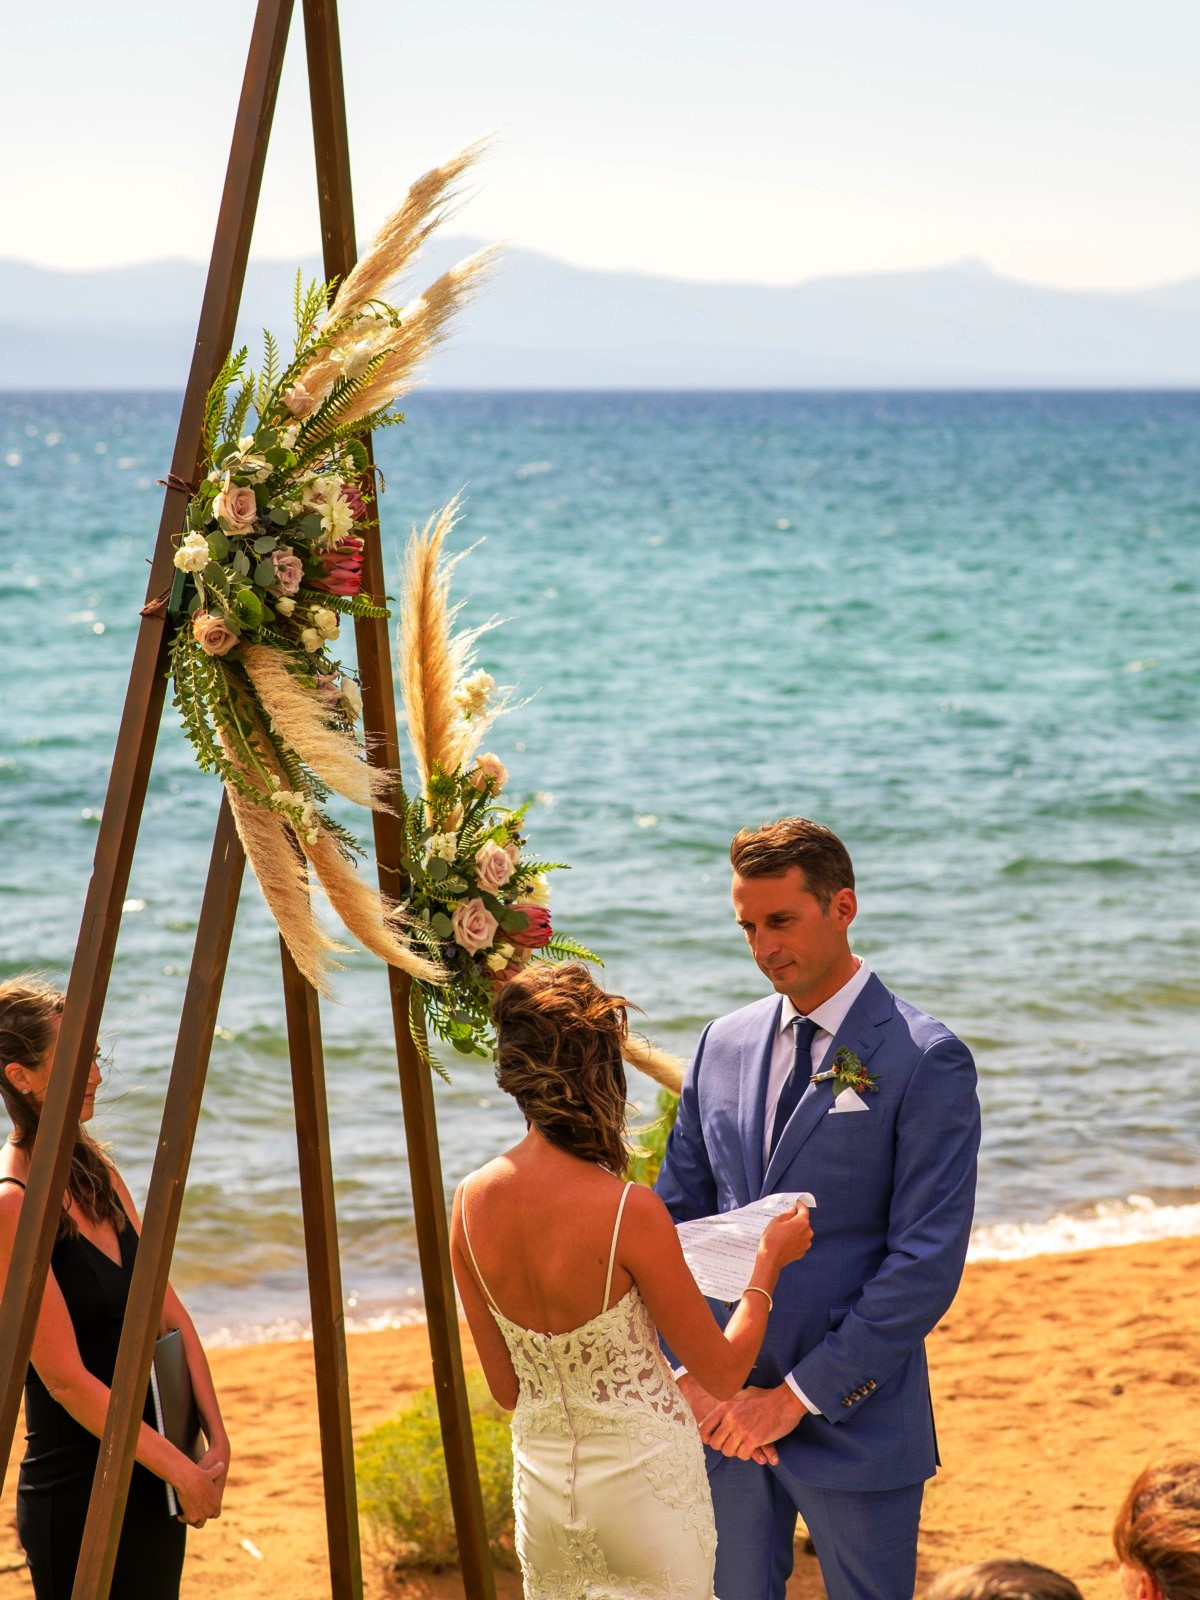 lakeside wedding ceremony at Edgewood Tahoe - bride reads vows